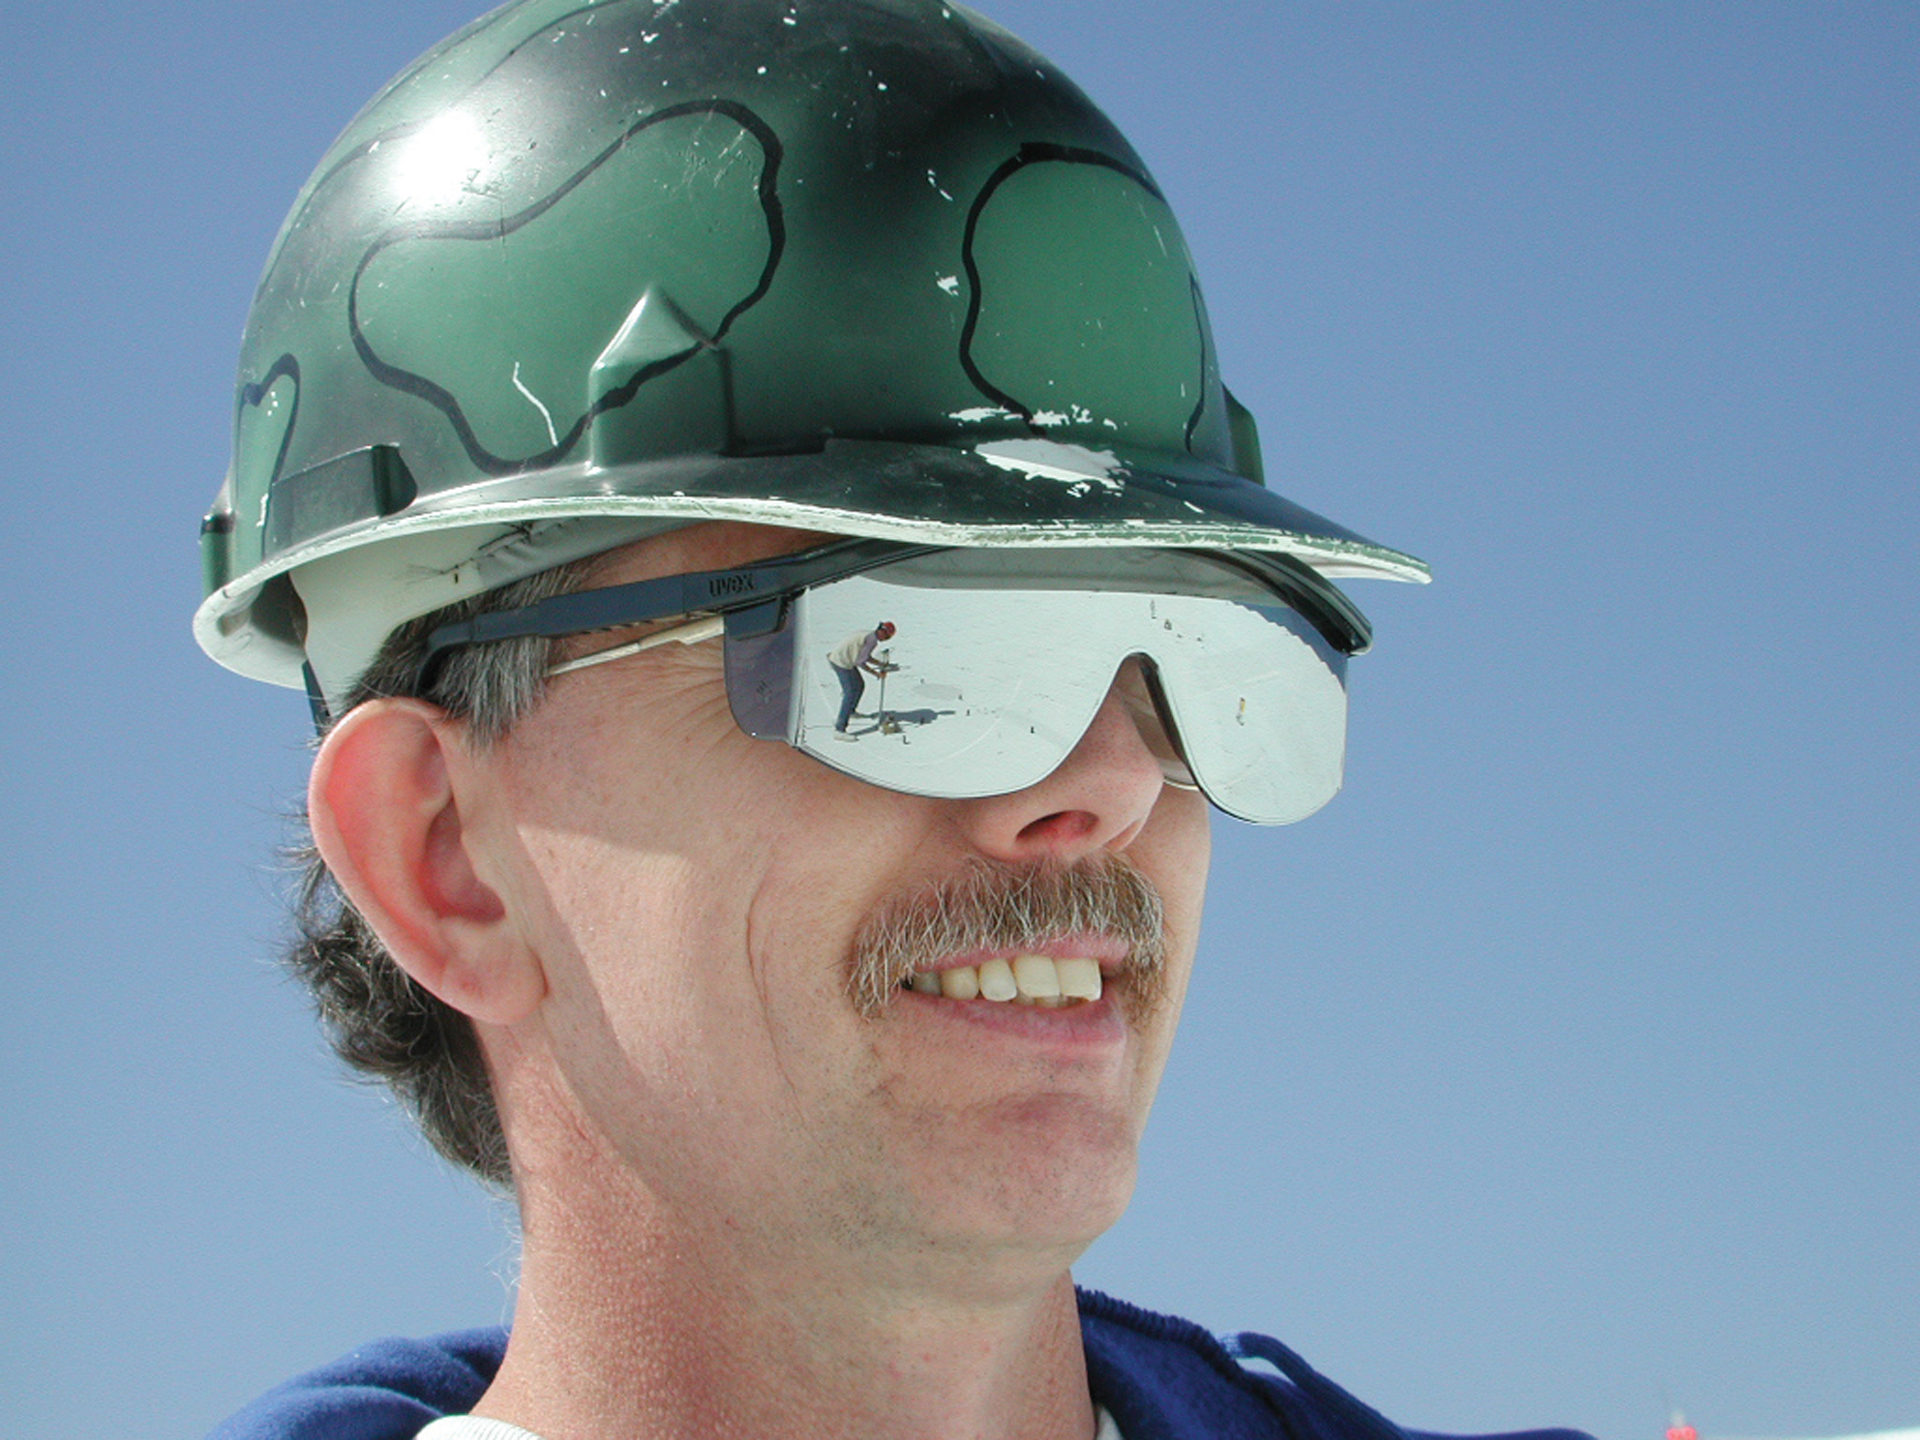 Telescope technician wearing safety sunglasses